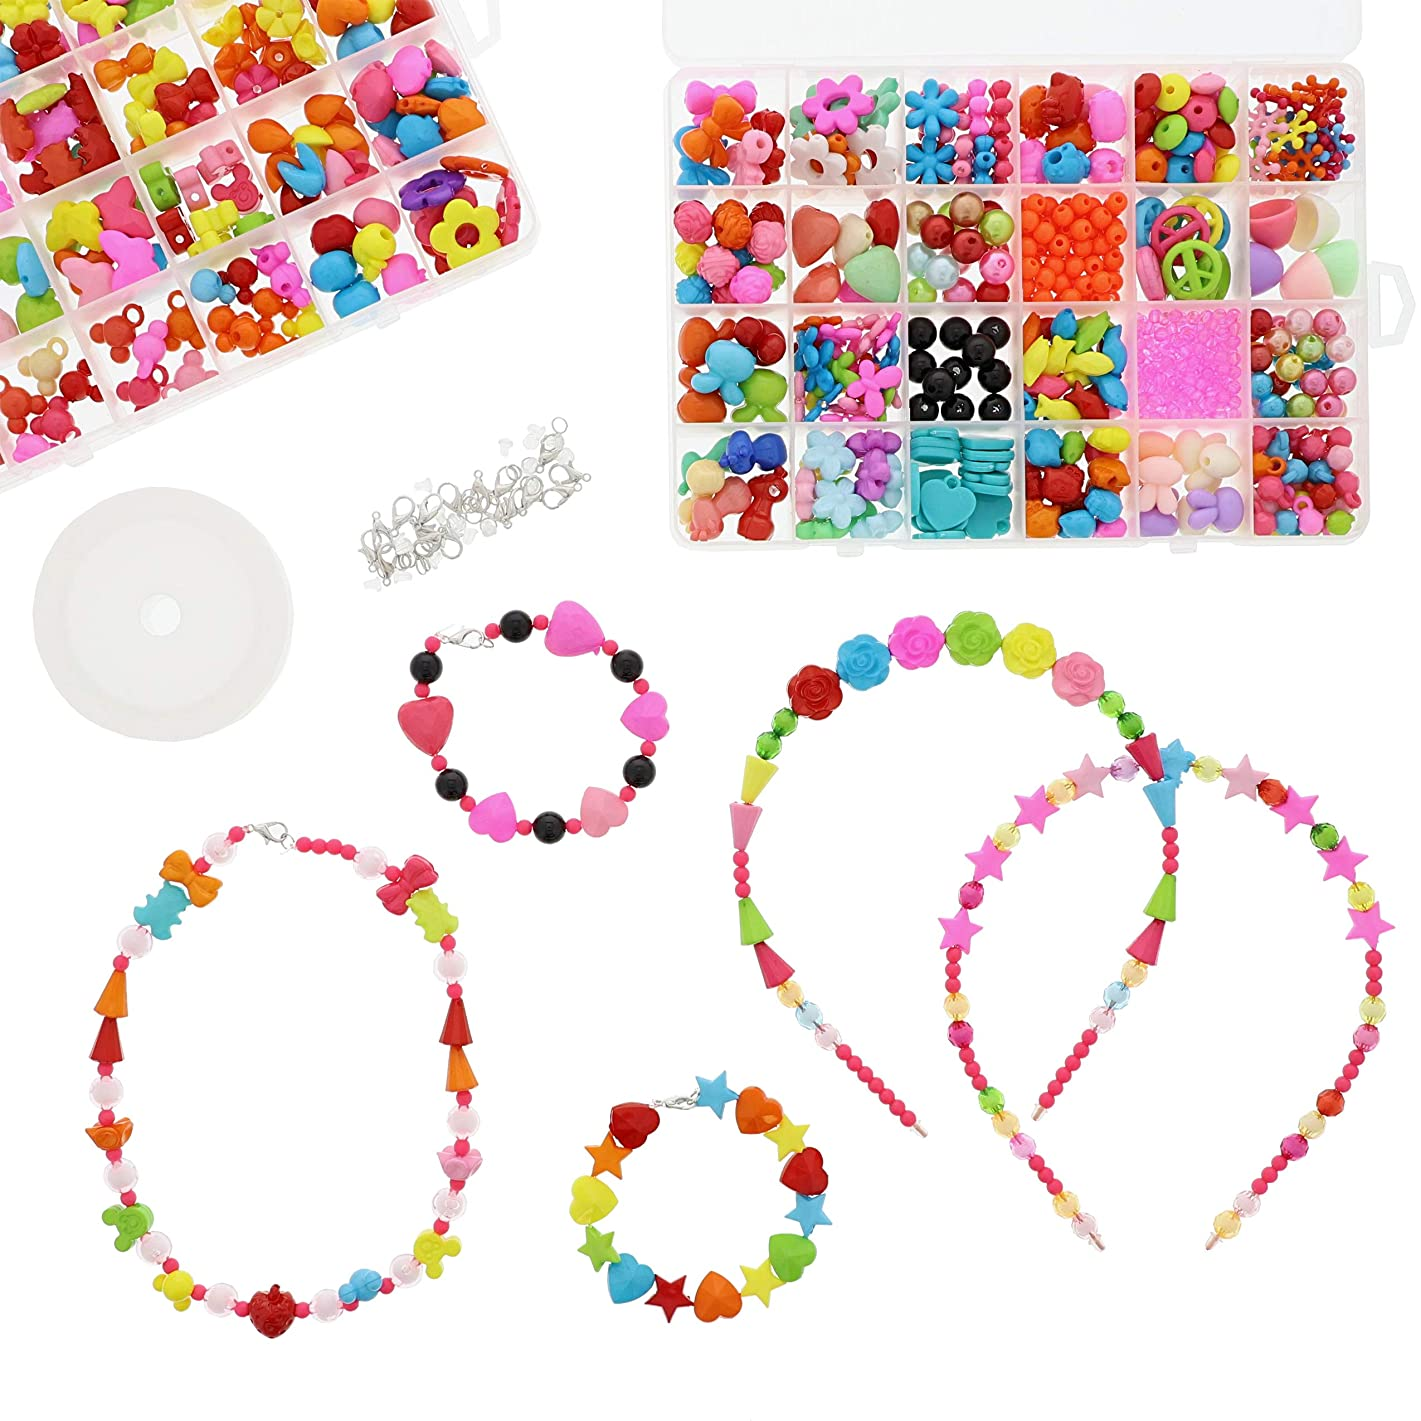 Genie Crafts 2-Pack Bead Cases - Kids DIY Jewelry Making Kit for Headbands, Bracelets, and Necklaces, 48 Assorted Designs